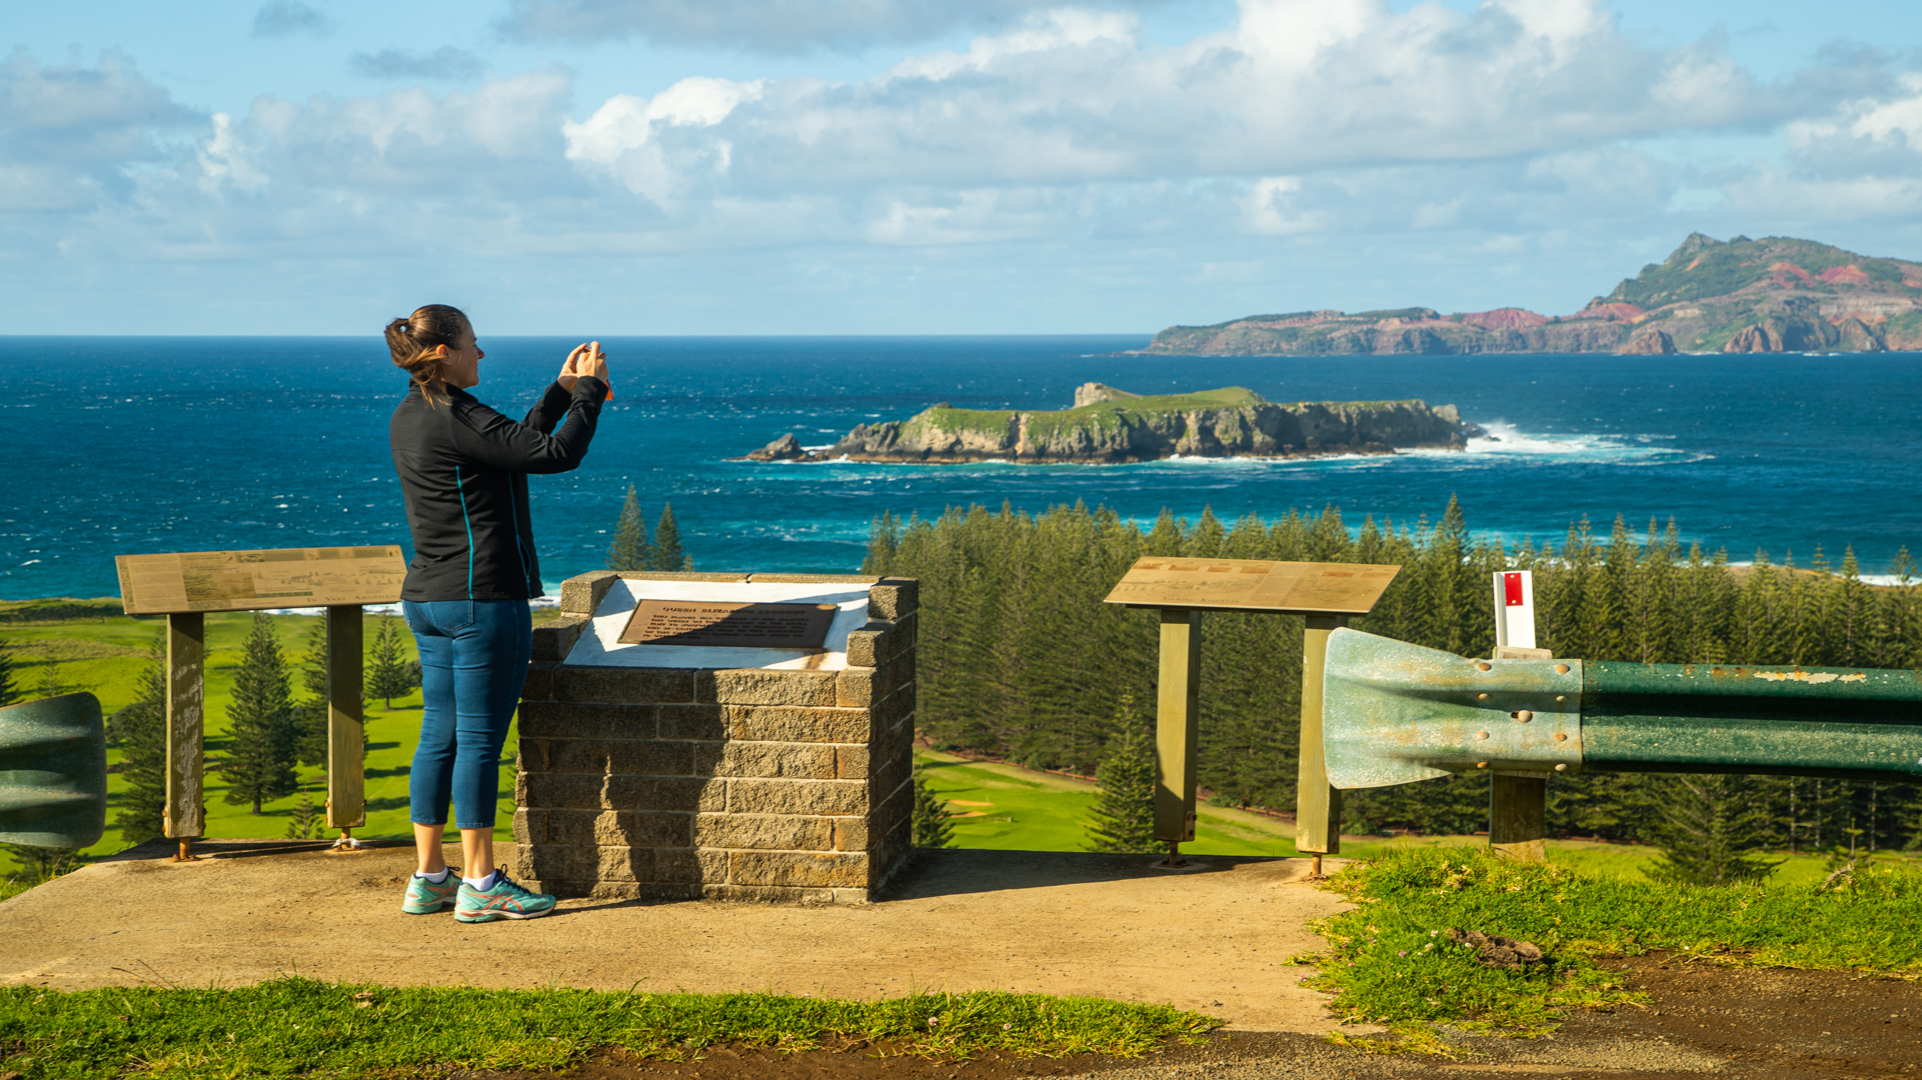 Woman in activewear taking photo from lookout point. Norfolk pine forest meeting ocean with bare rocky island in background.